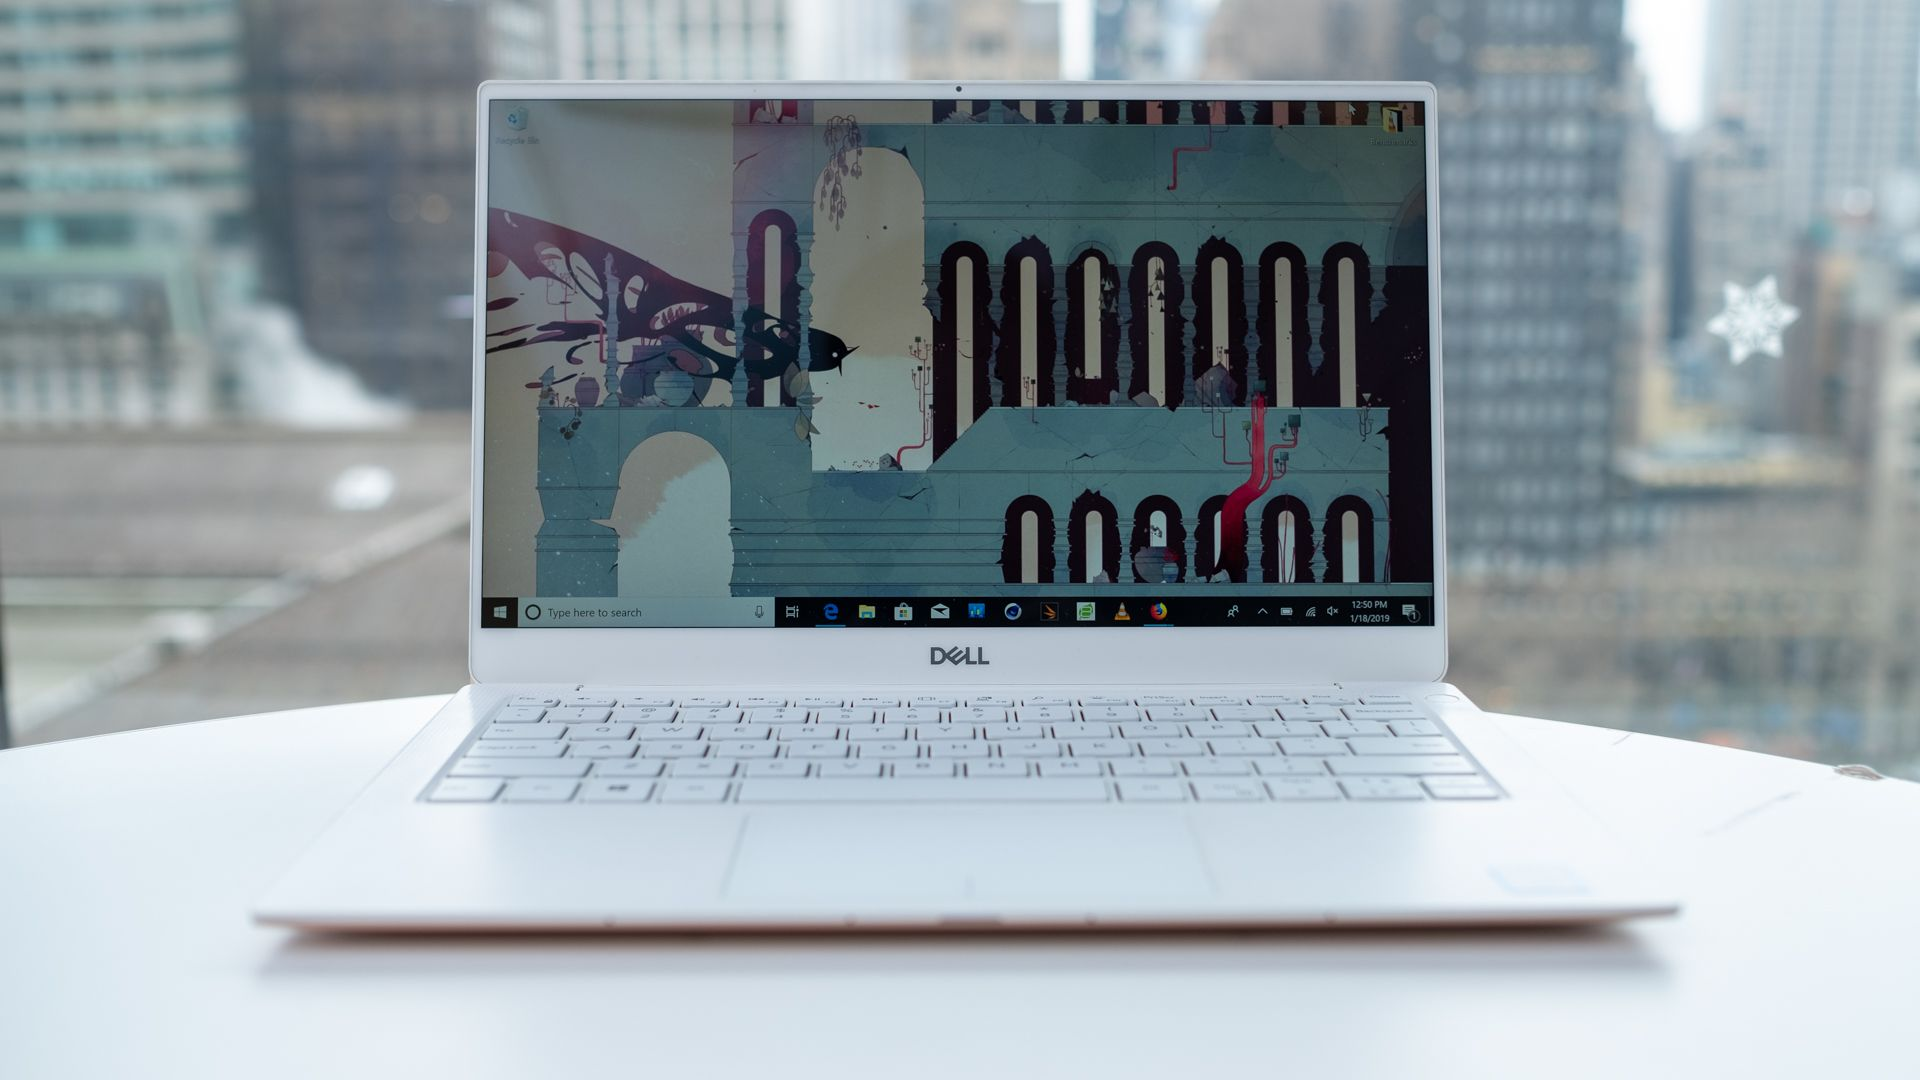 The best Dell laptops 2019 Dell xps, Dell xps 13, Dell